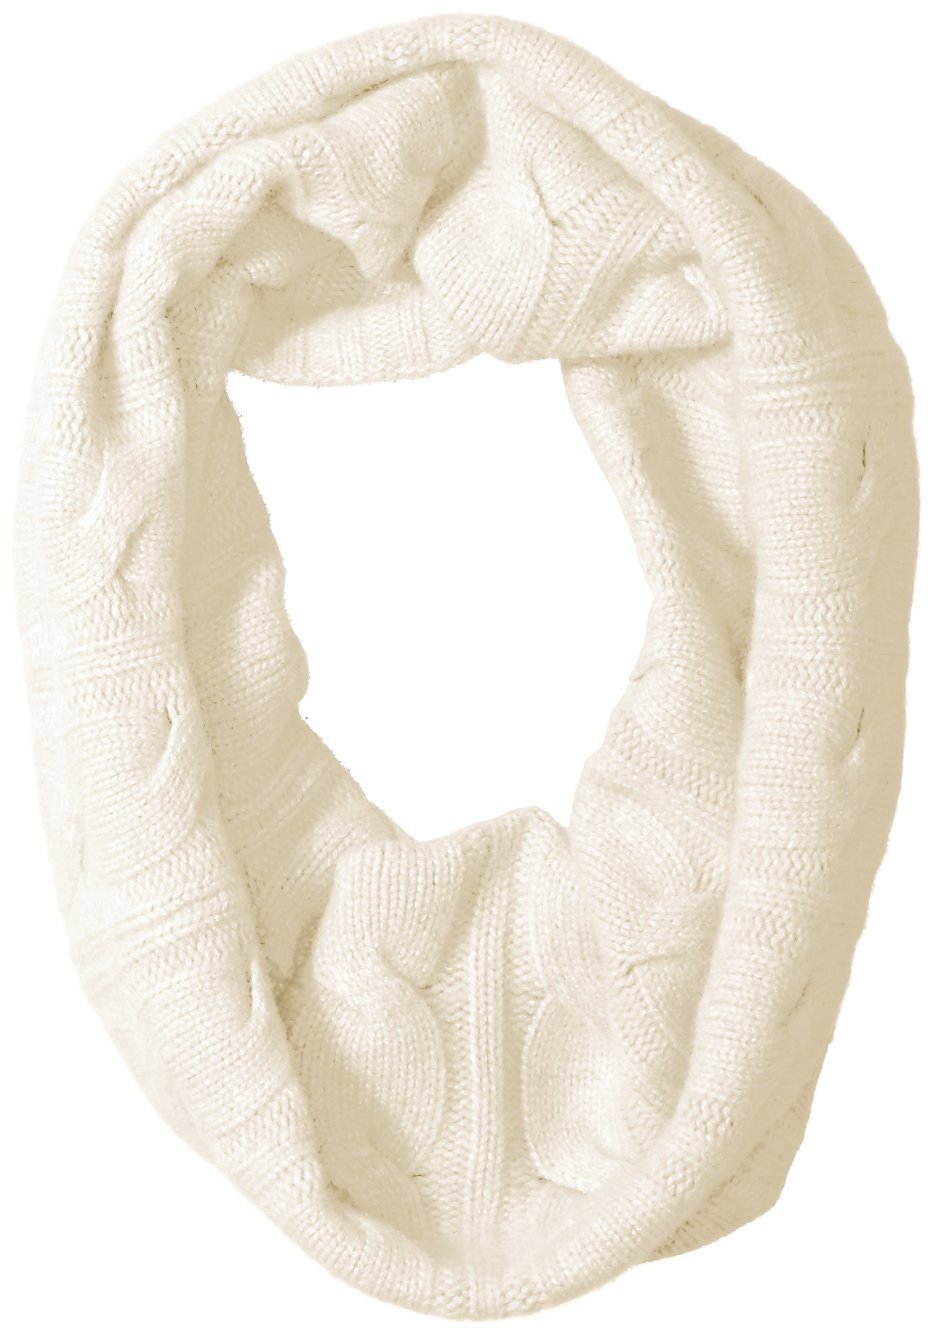 Sofia Cashmere Women's 100 Percent Cashmere Cable Snood, Ivory, One